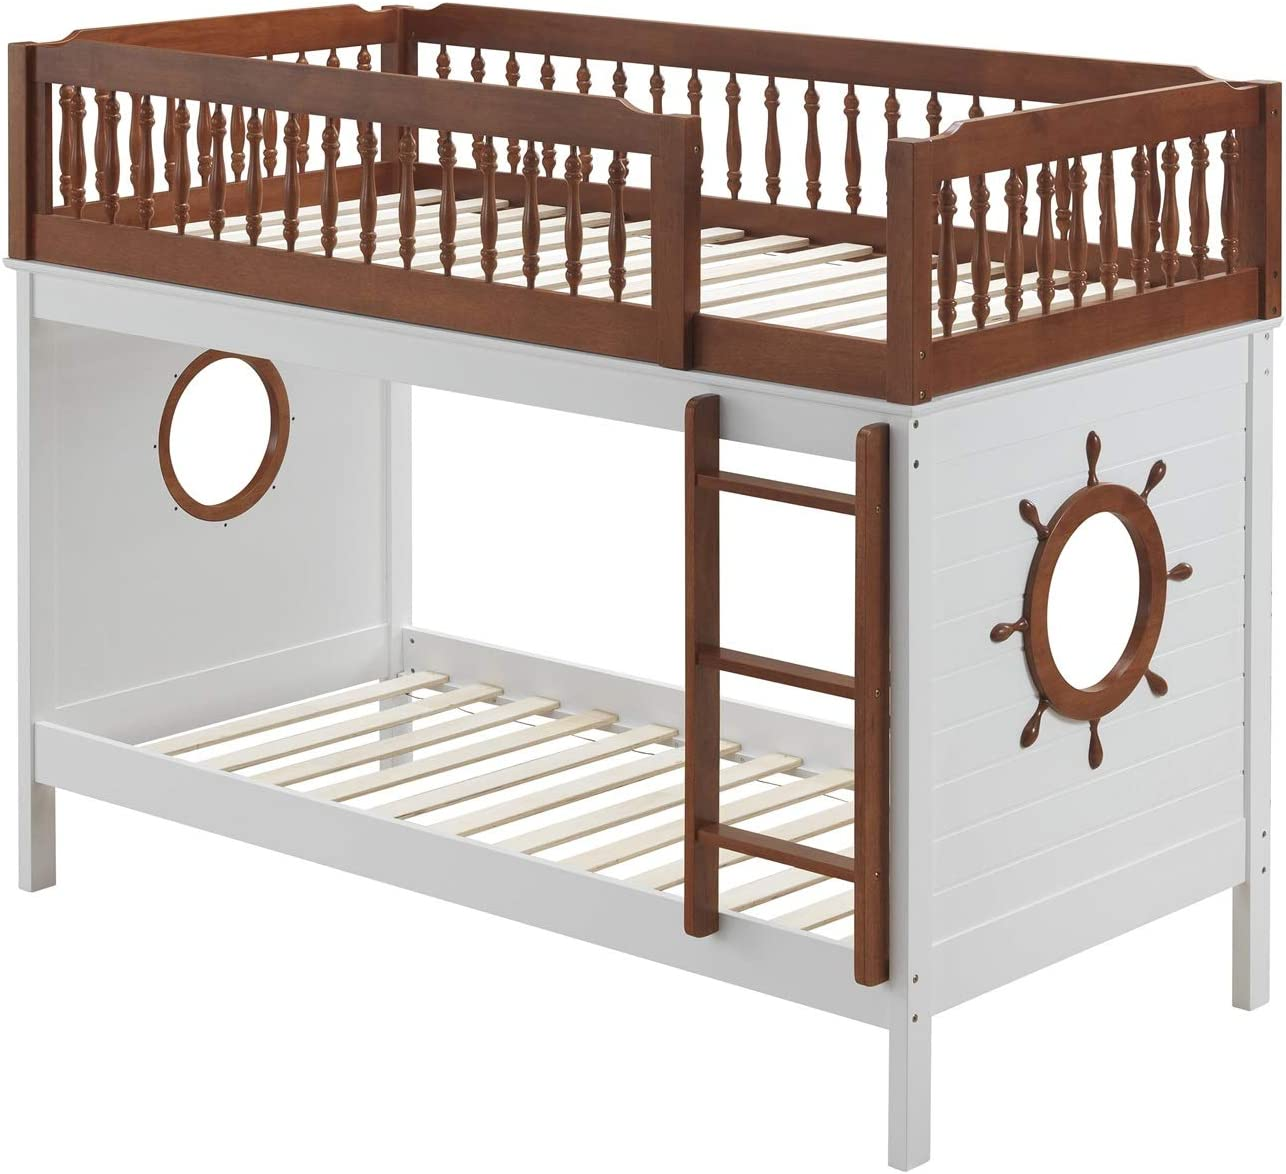 Amazon Com Ship Shape Bunk Bed Twin Over Twin Bunk Beds Frame Wood With Fixed Front Ladder Guard Rail Top Bed And Decorative Turned Spindles Ship Wheel Design Oak And White Us Stocks Furniture